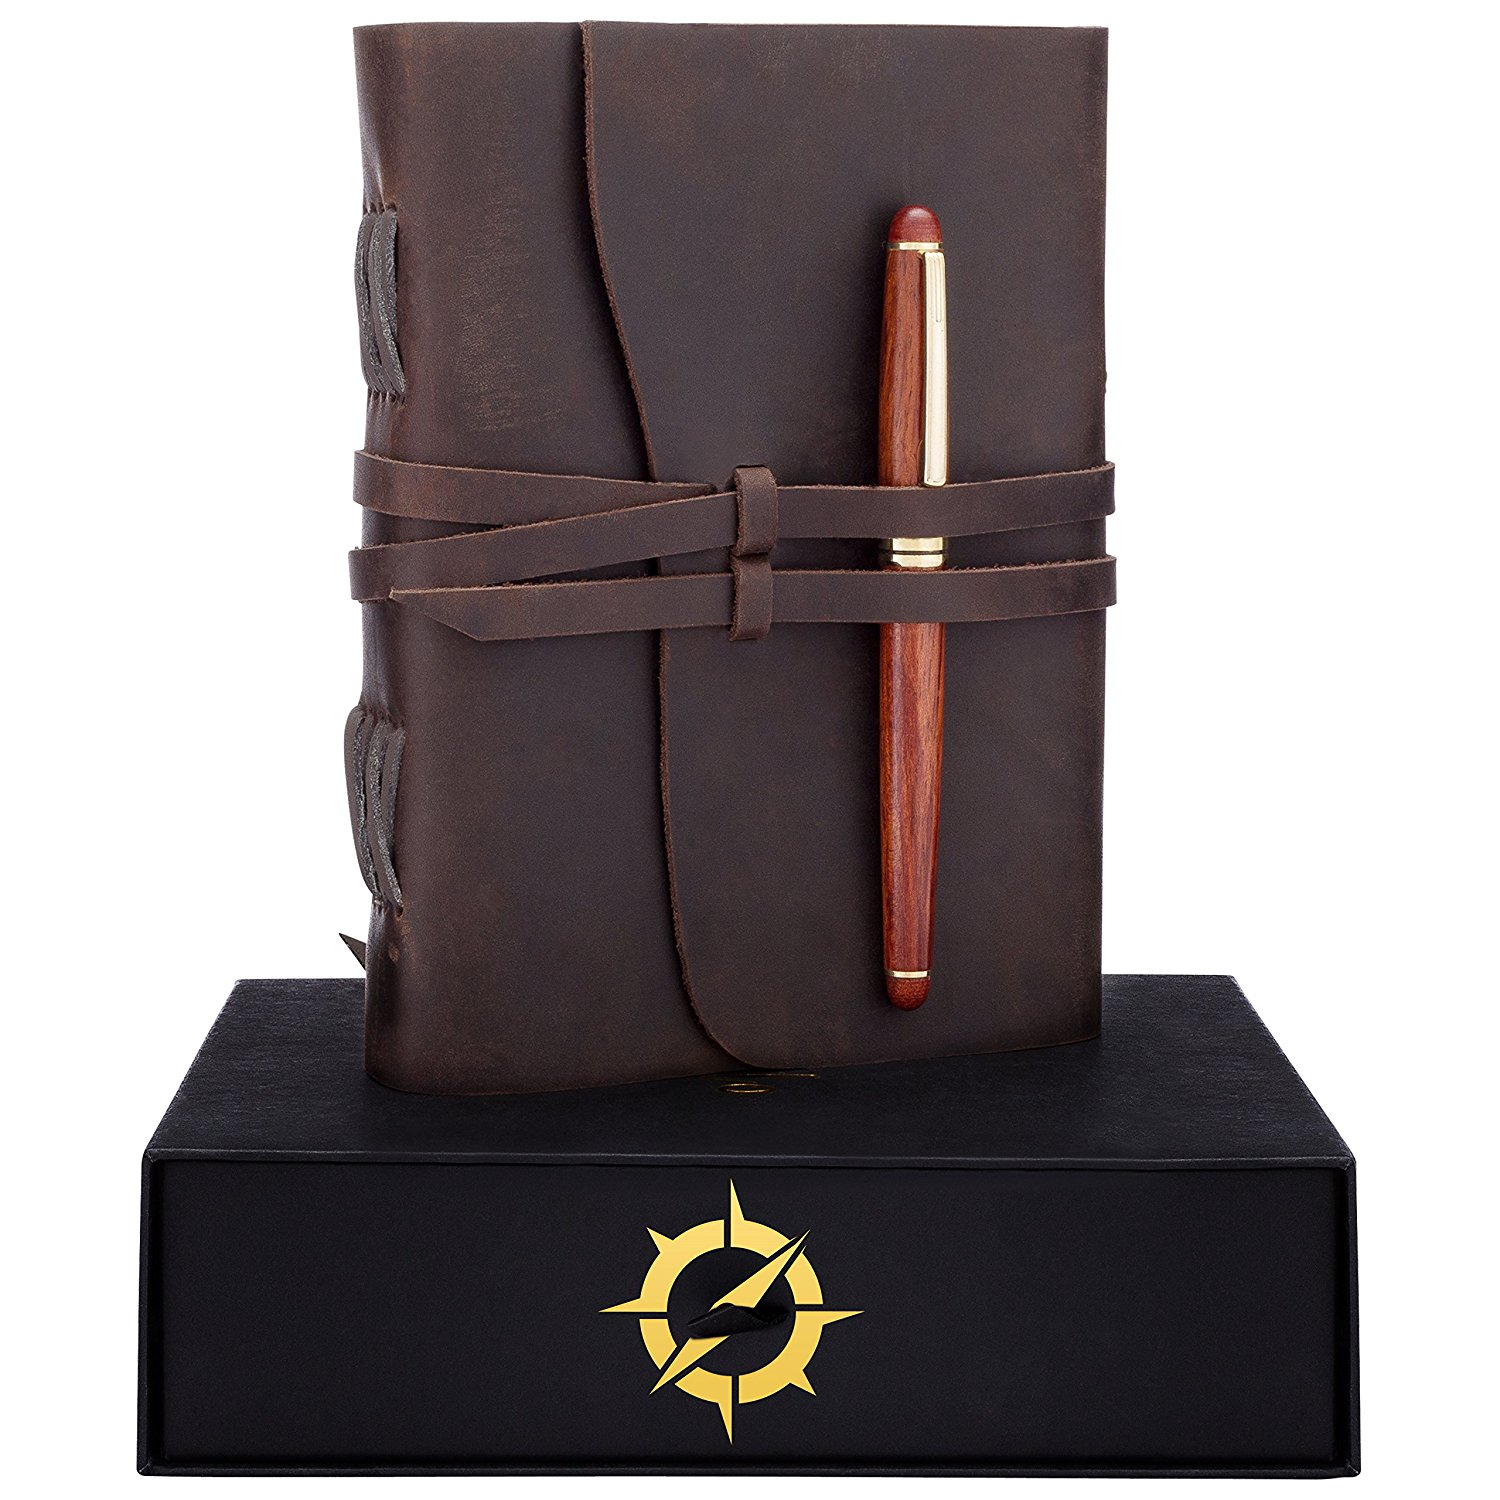 Get Quotations Leather Journal Gift Set RoseWood Pen A Handmade Unique Gifts Ideas Best Personalized Anniversary Birthday